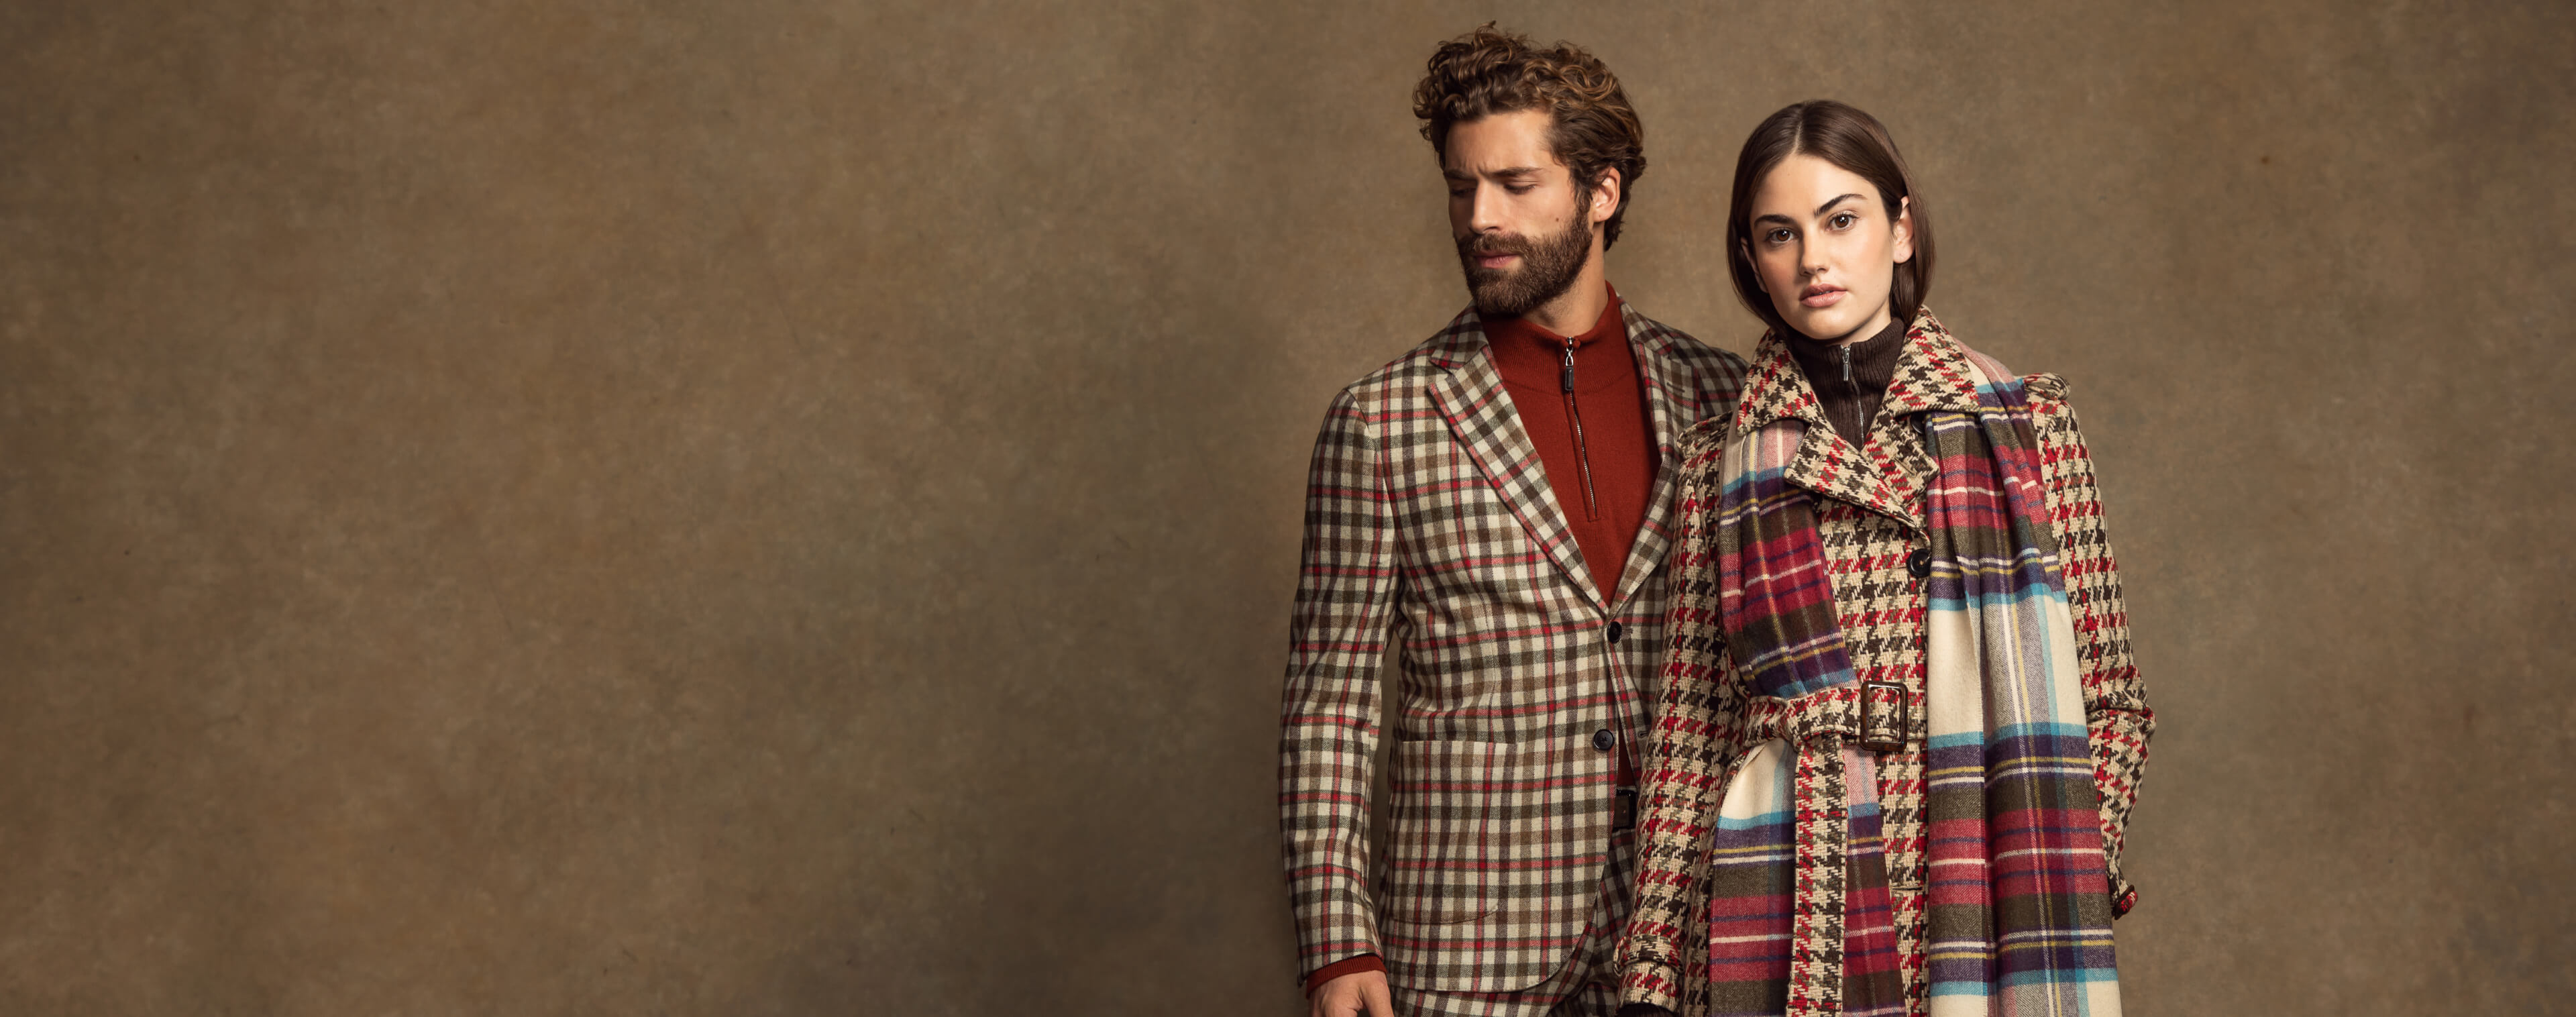 Contemporary Tweed - From Countryside to Catwalk